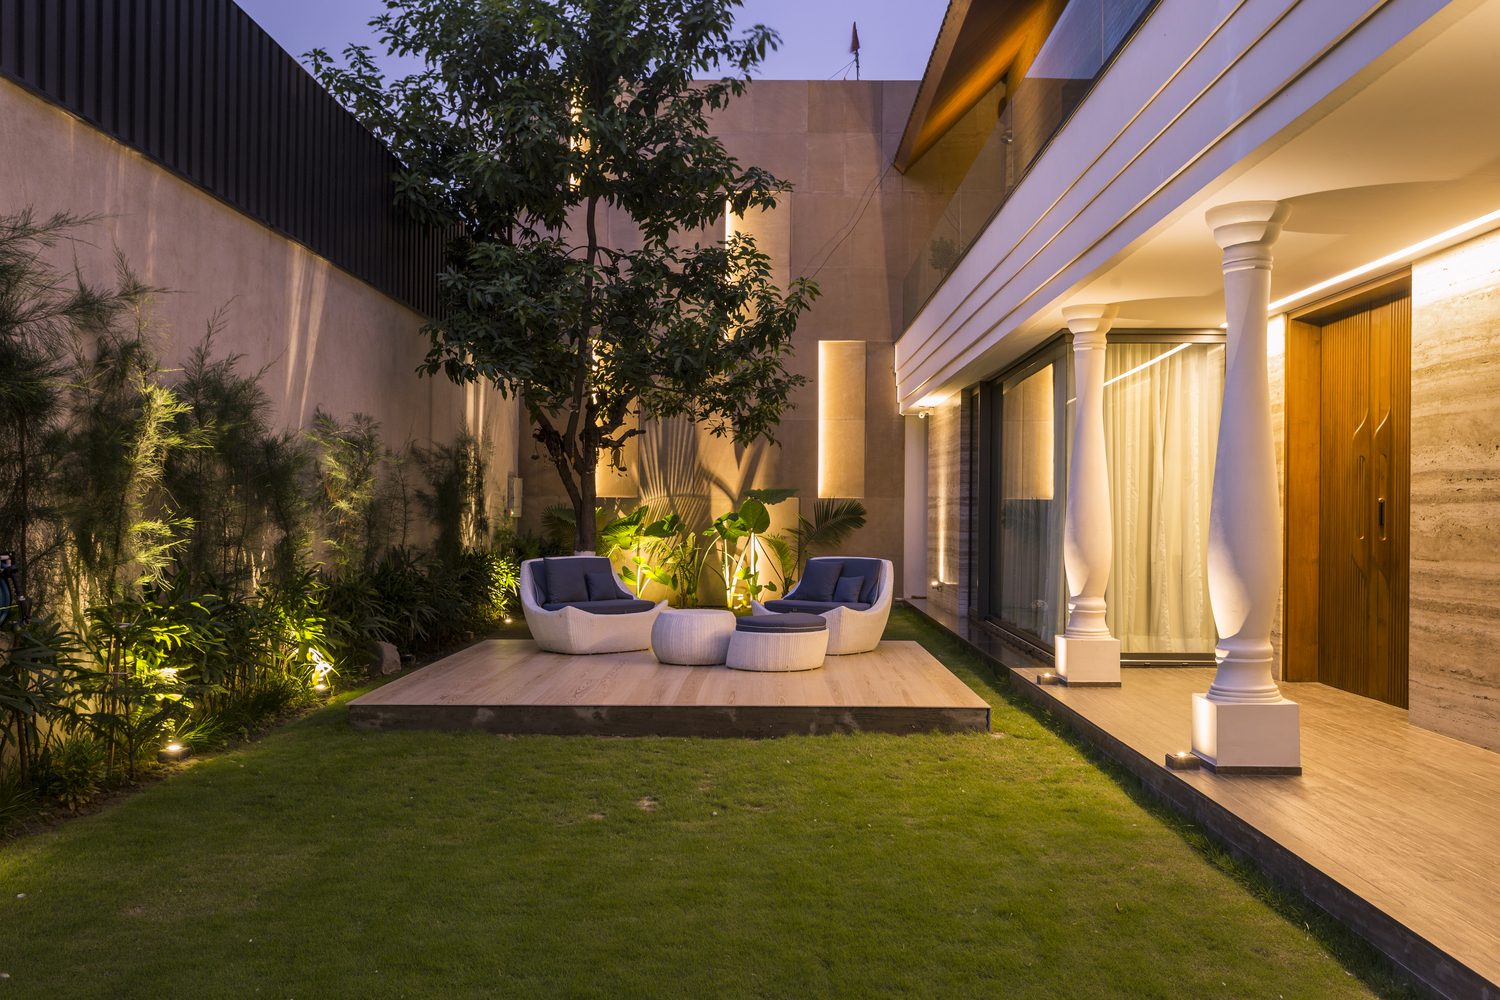 Contemporary design with elements of Indian Traditional